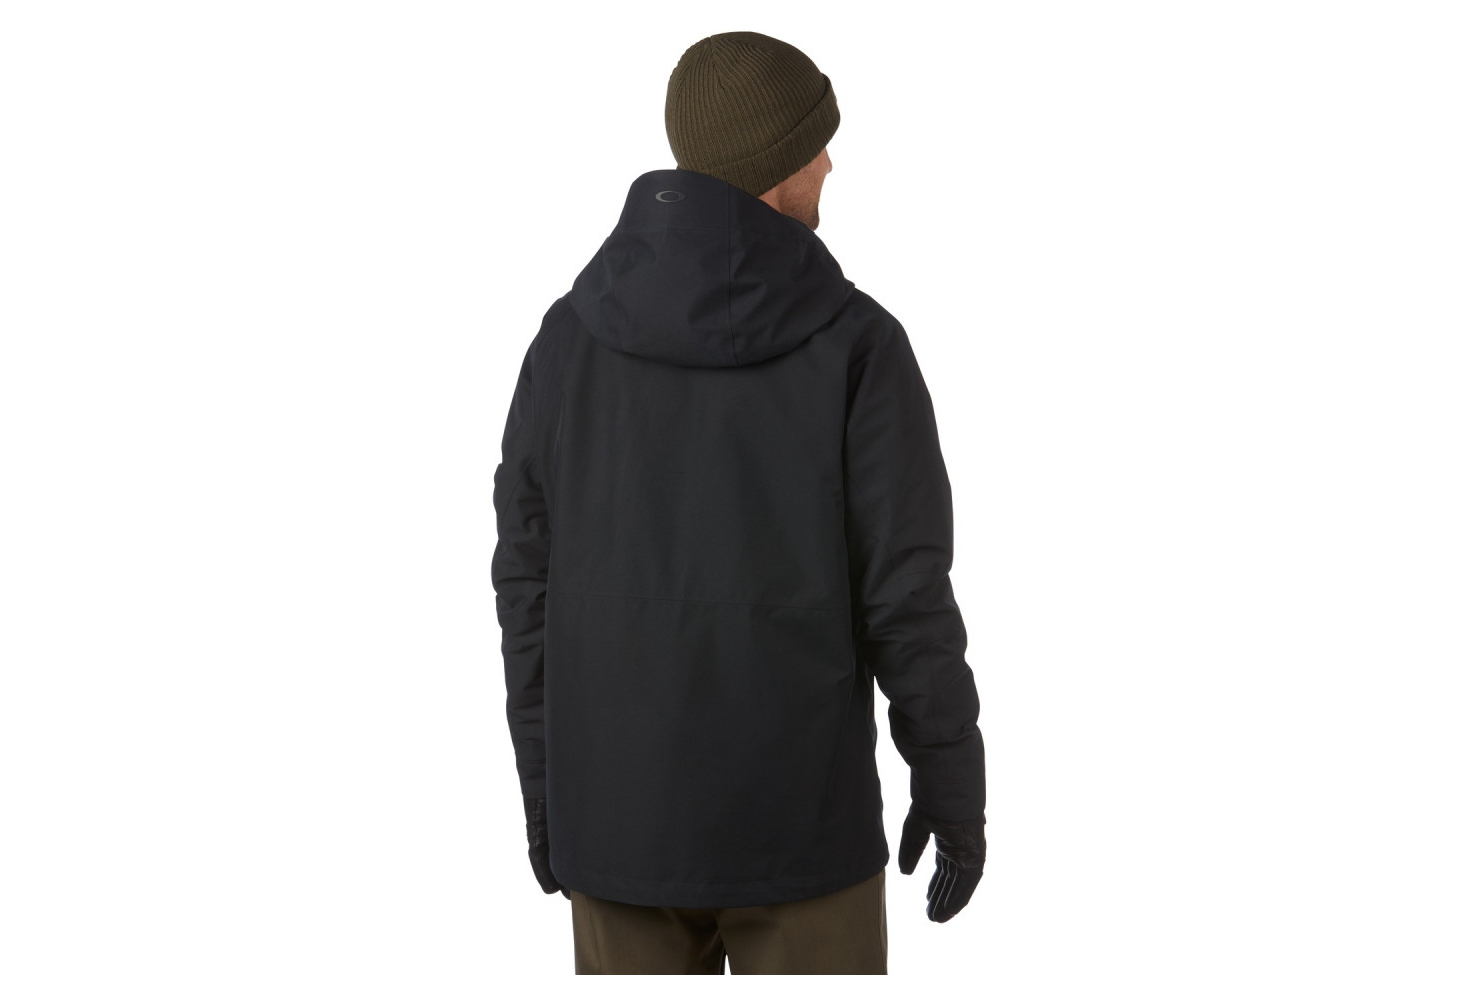 Veste Oakley Lookout 2l Gore tex Blackout par Precision Ski